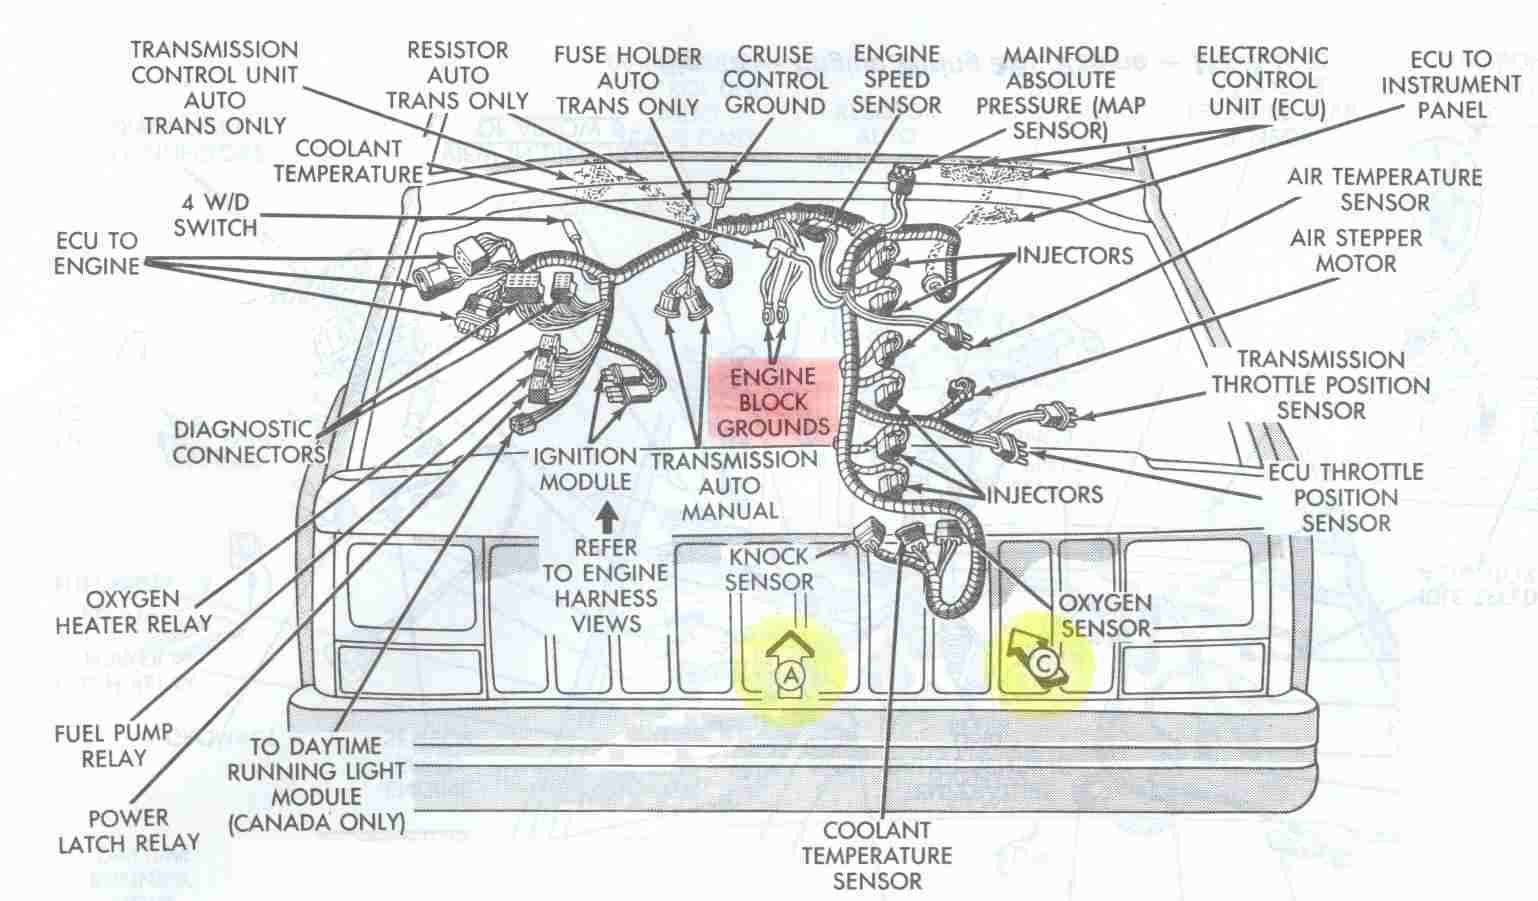 engine bay schematic showing major electrical ground points for 4 0l rh pinterest com 1999 Jeep Cherokee Wiring Diagram Jeep Cherokee Wiring Harness Diagram